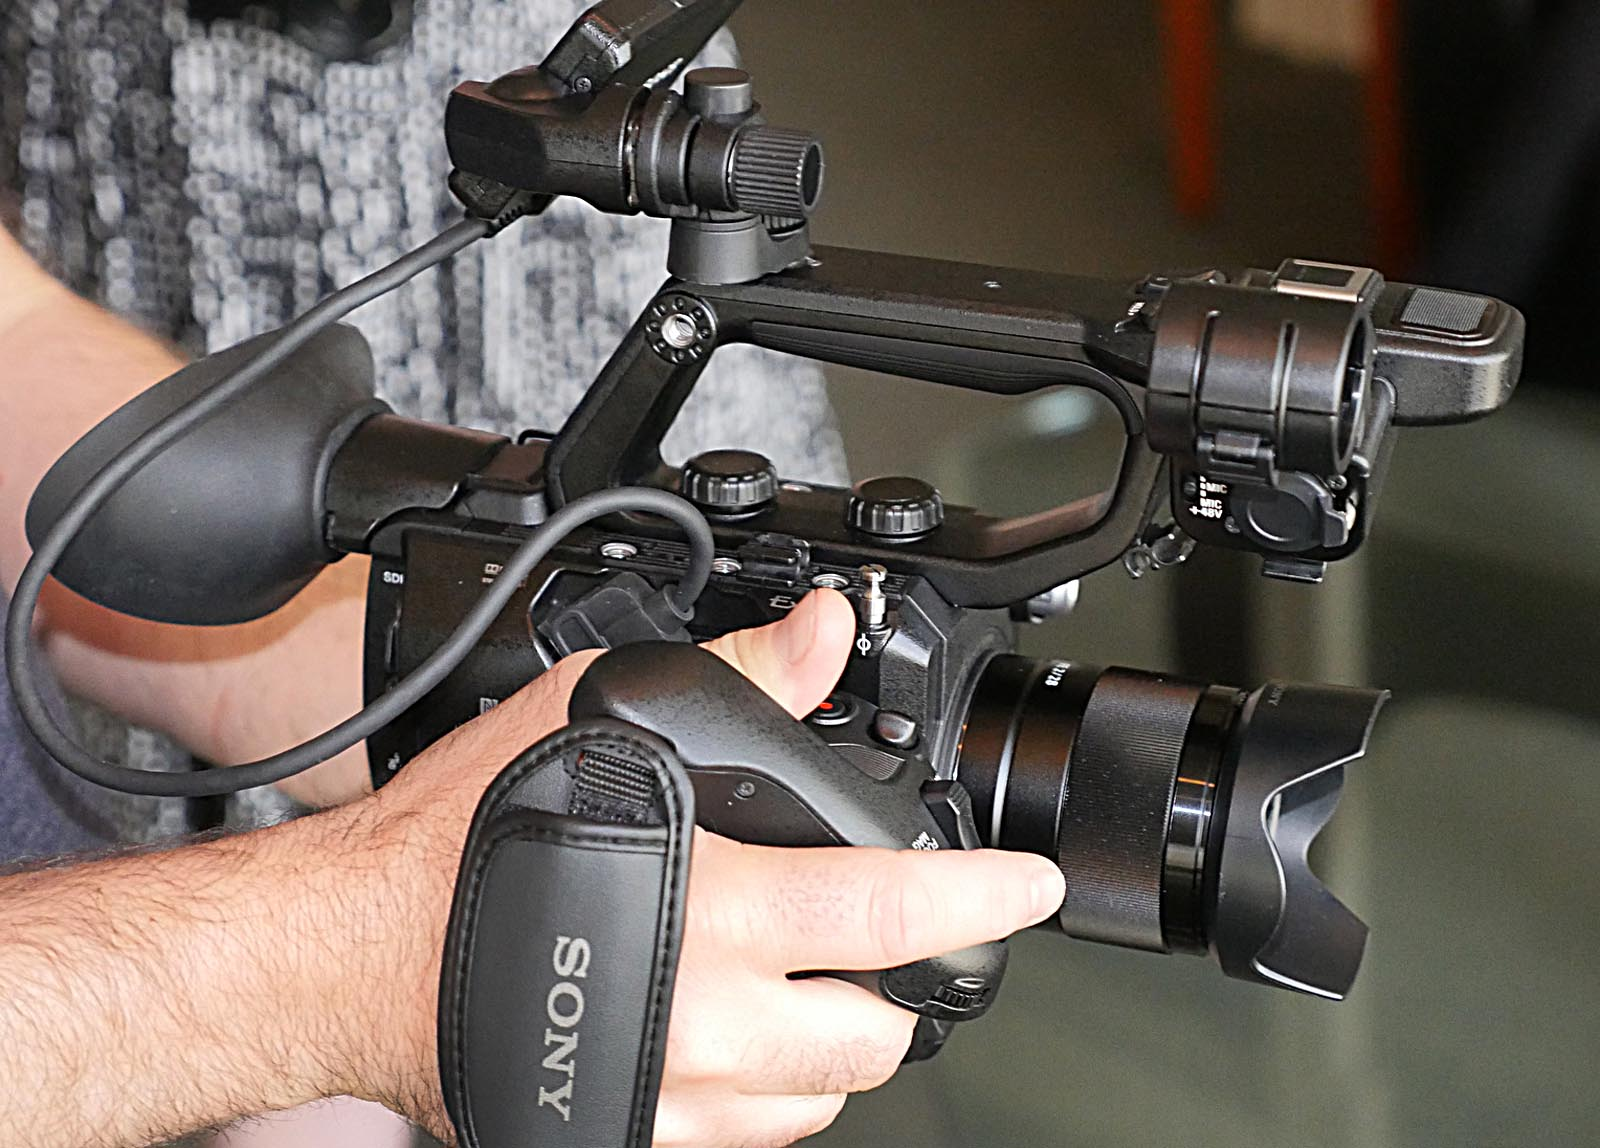 Sony introduces the PXW FS5 camera during a briefing at Sony Americas headquarters in Manhattan Wednesday, September 9, 2015. photo:  © 2015 Chuck Fadely